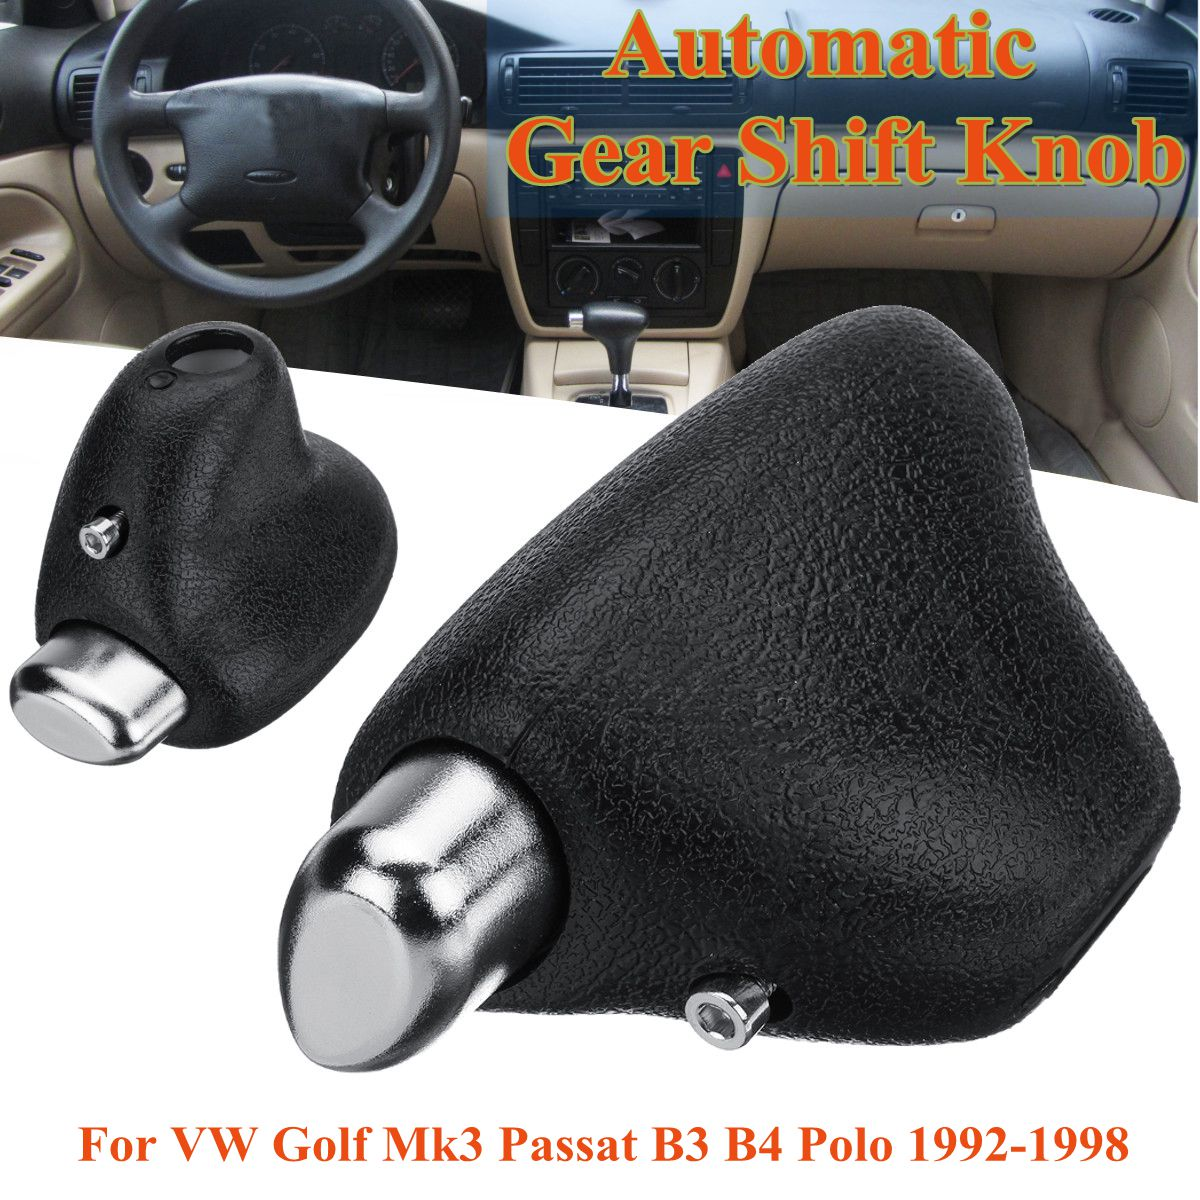 Automatic Transmission Car <font><b>Gear</b></font> Shift <font><b>Knob</b></font> Lever Shifter Head For <font><b>VW</b></font> <font><b>Golf</b></font> <font><b>Mk3</b></font> Passat B3 B4 Polo 1992-1998 image